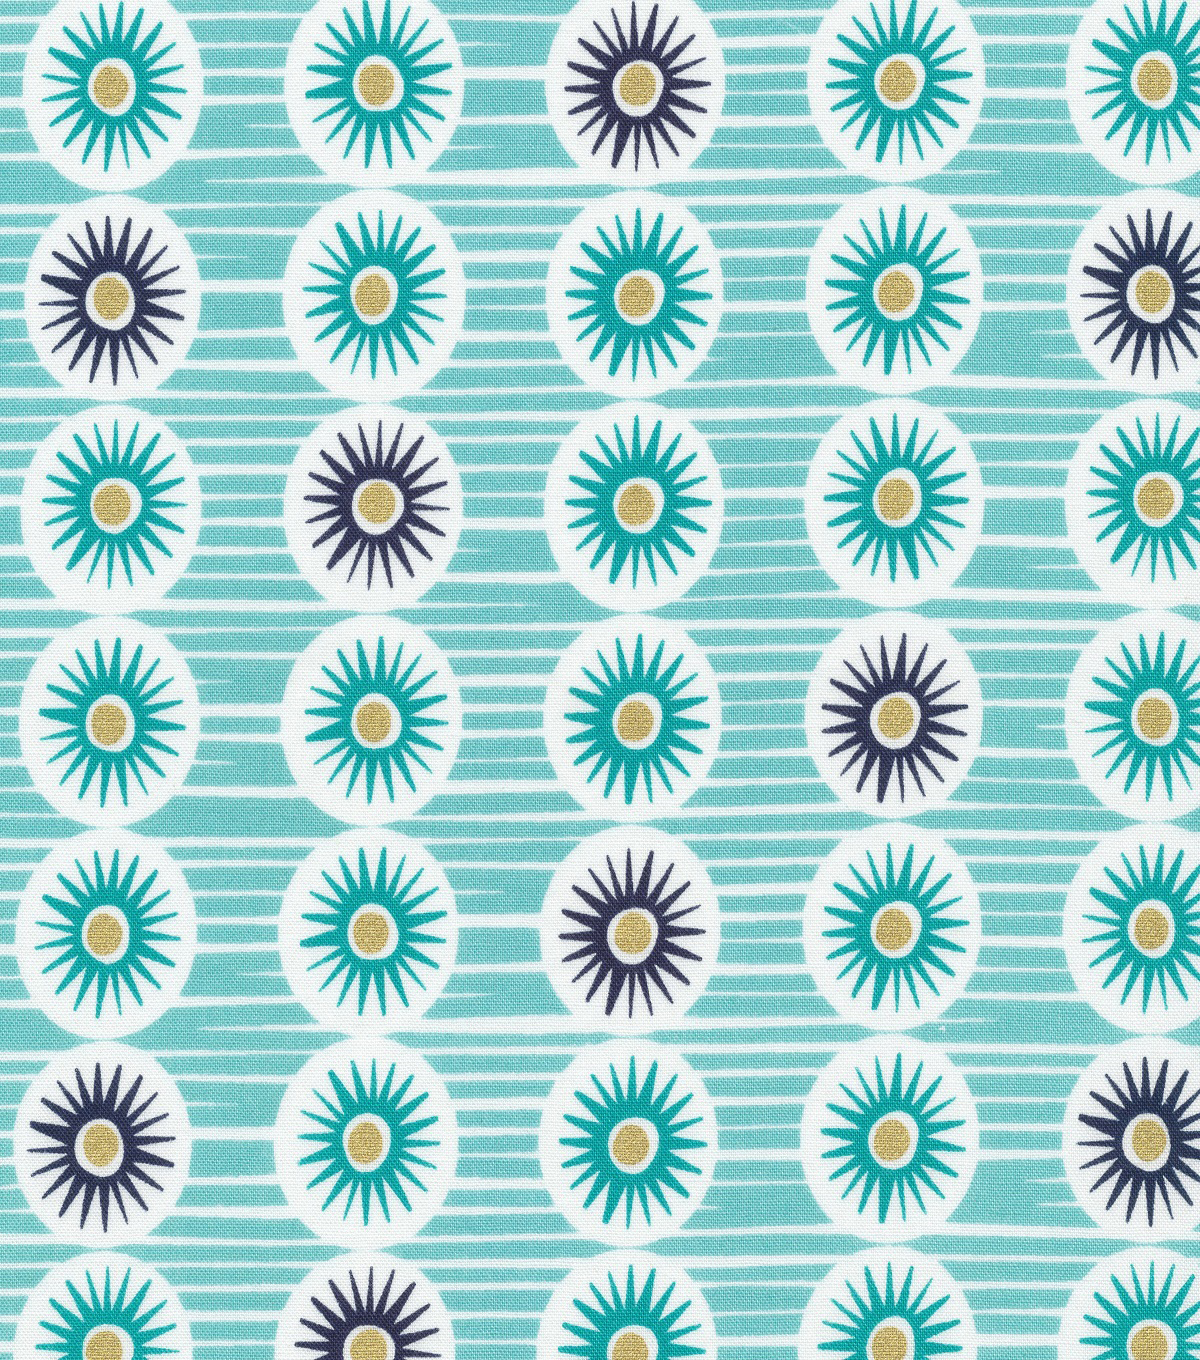 Cloud 9 Premium Quilt Fabric - Bee Pool Turquoise | JOANN : joann quilting fabric - Adamdwight.com